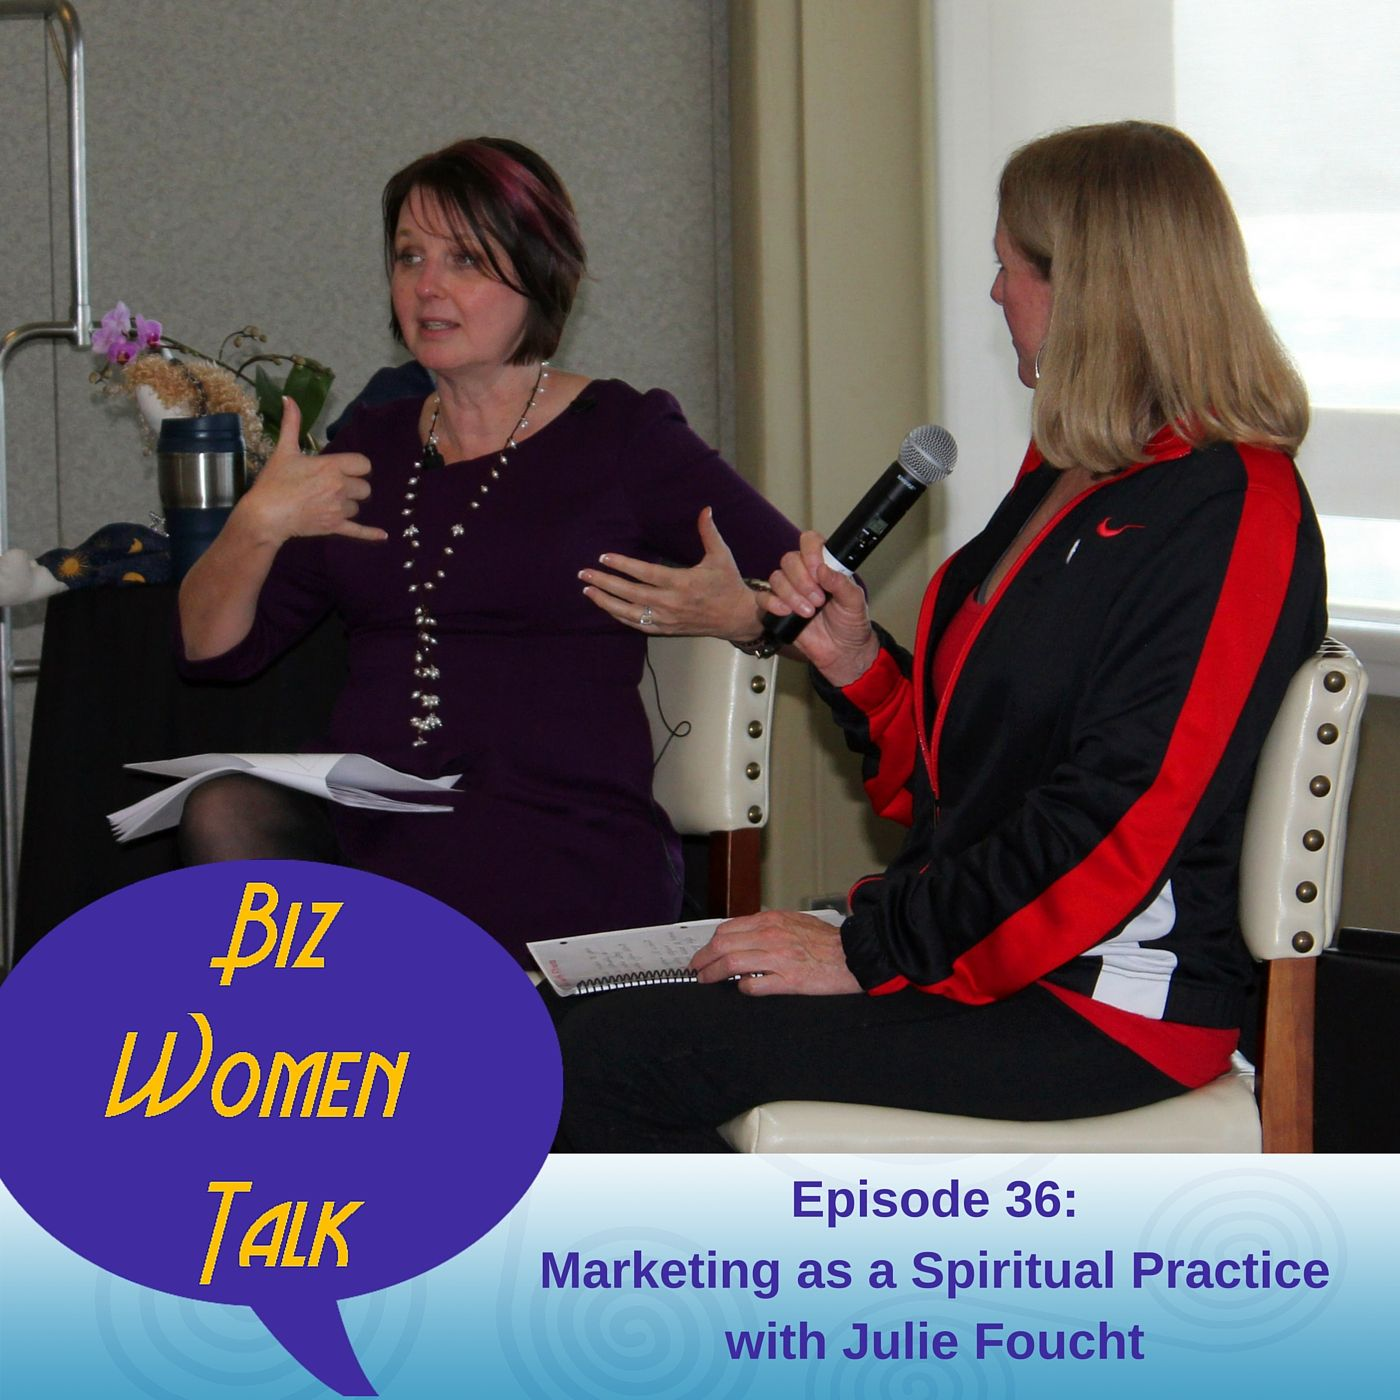 In this episode of Biz Women Talk, I explore the principals for understanding abundance; how money beliefs either serve us or they block our success; and how the flow of money works to make the world better. Plus, I share my spiritual practice for marketing my services. http://kickassbizcoaching.com/episode-36/